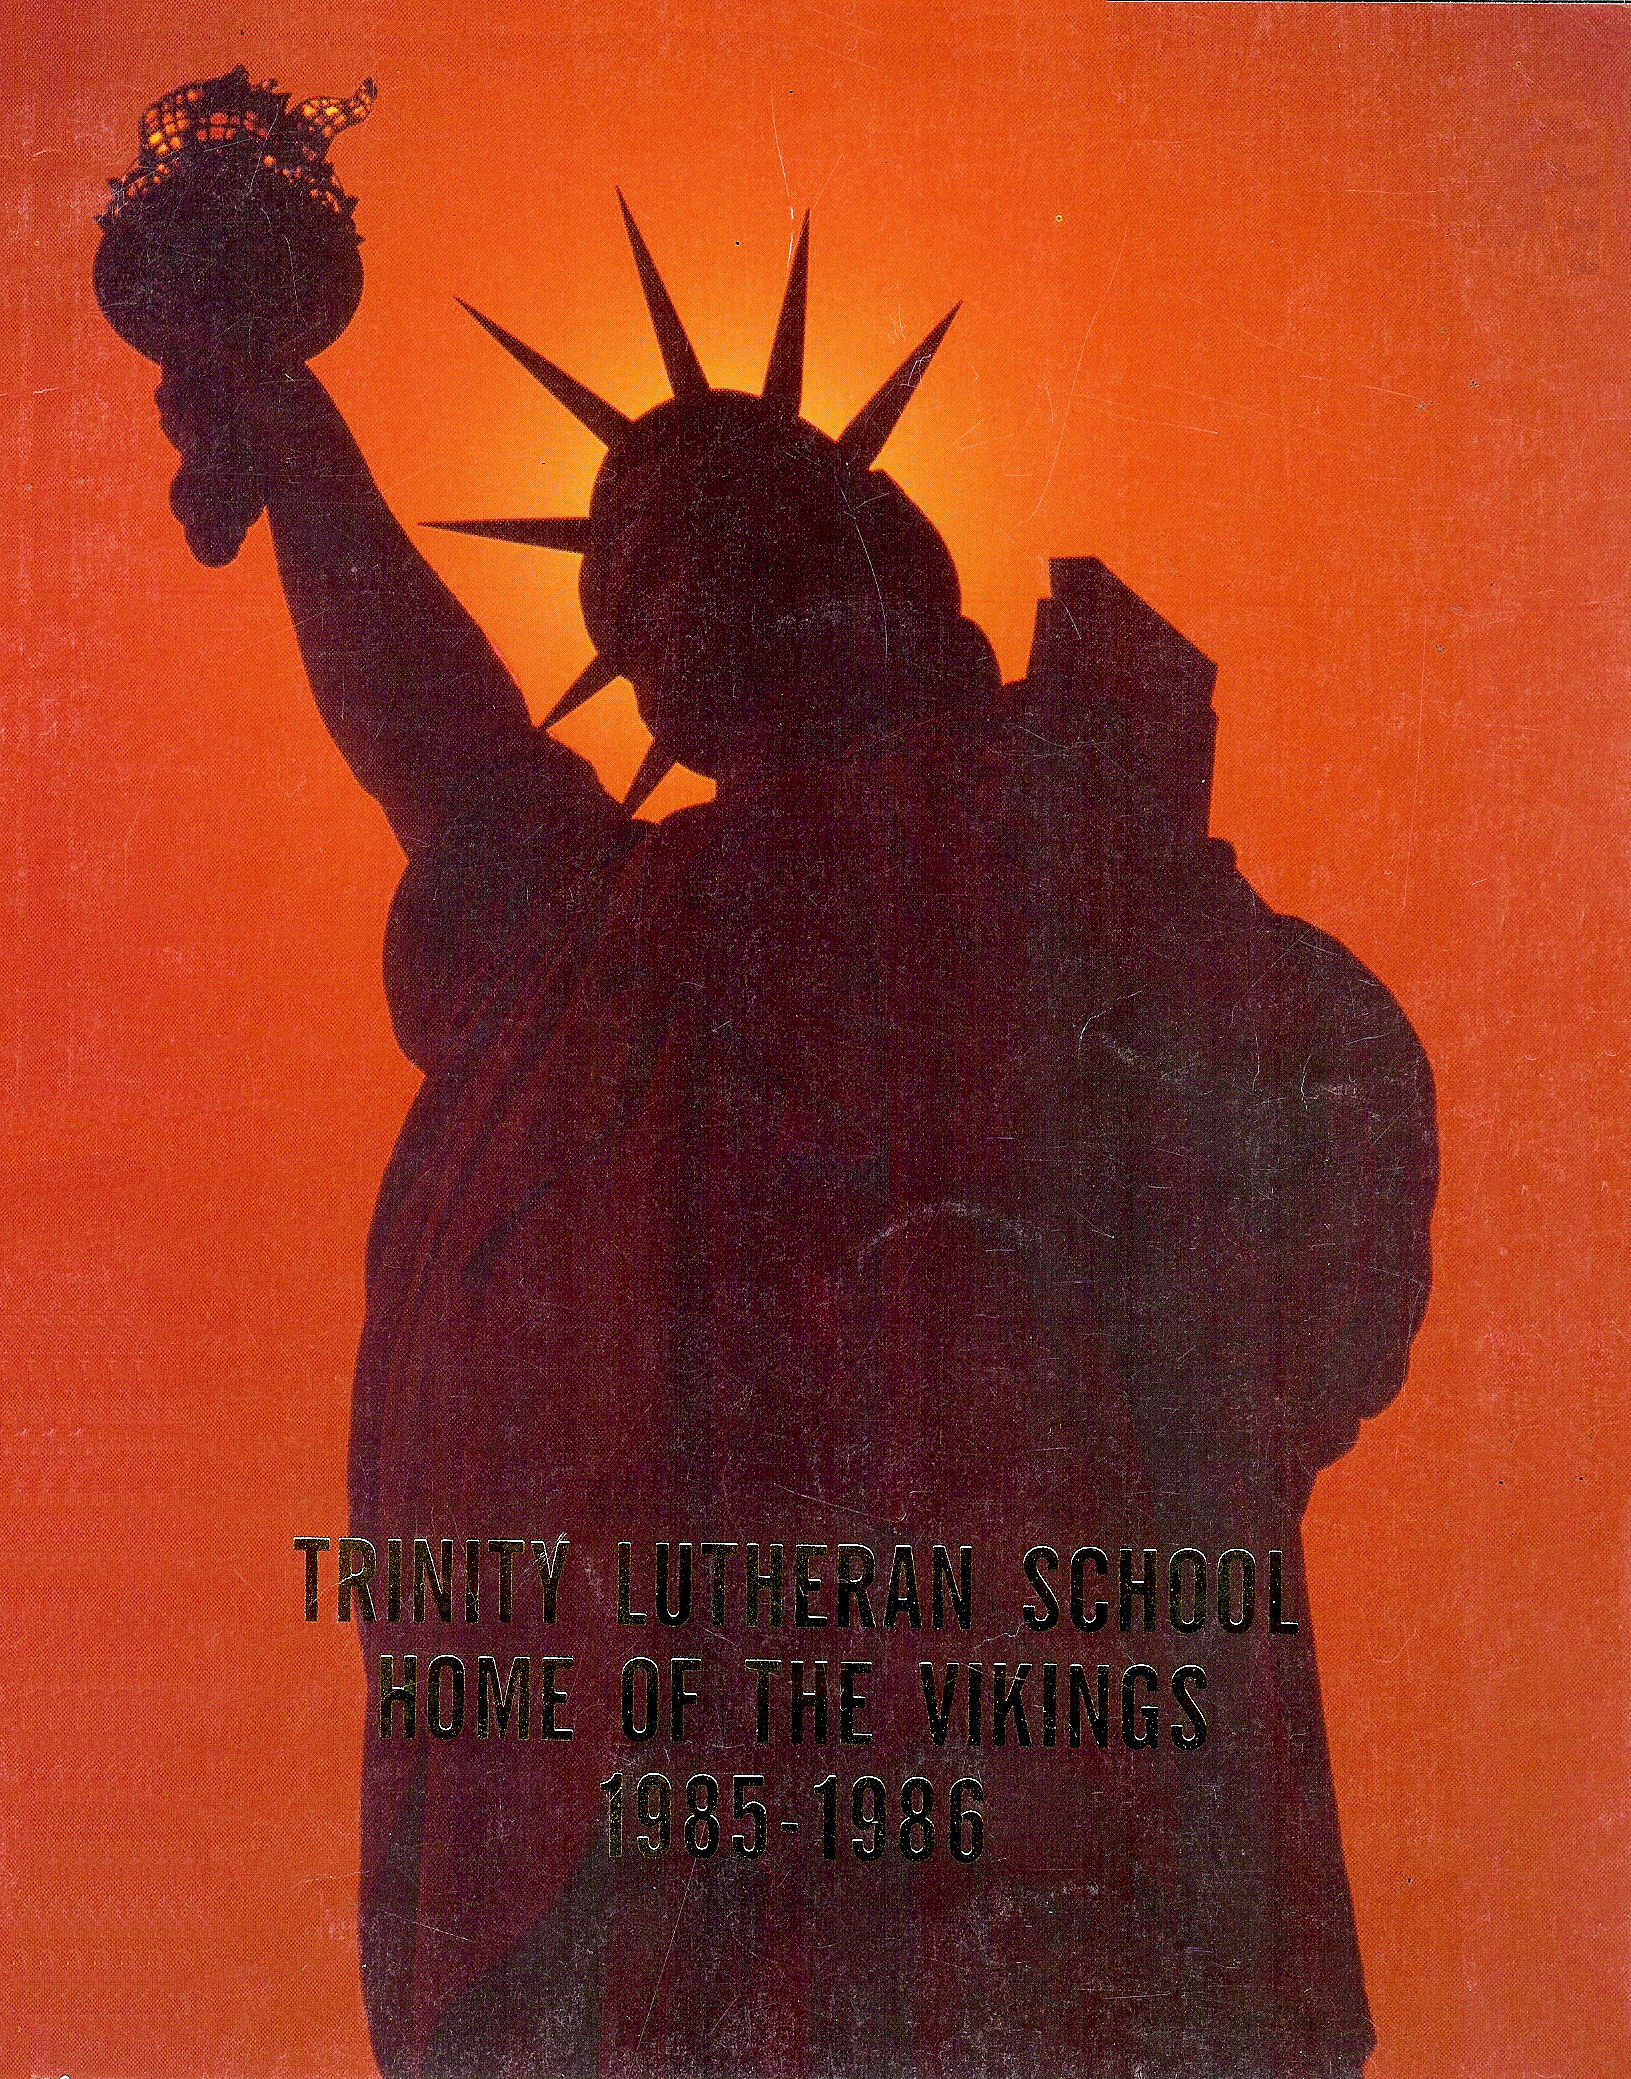 85-86 Yearbook Cover